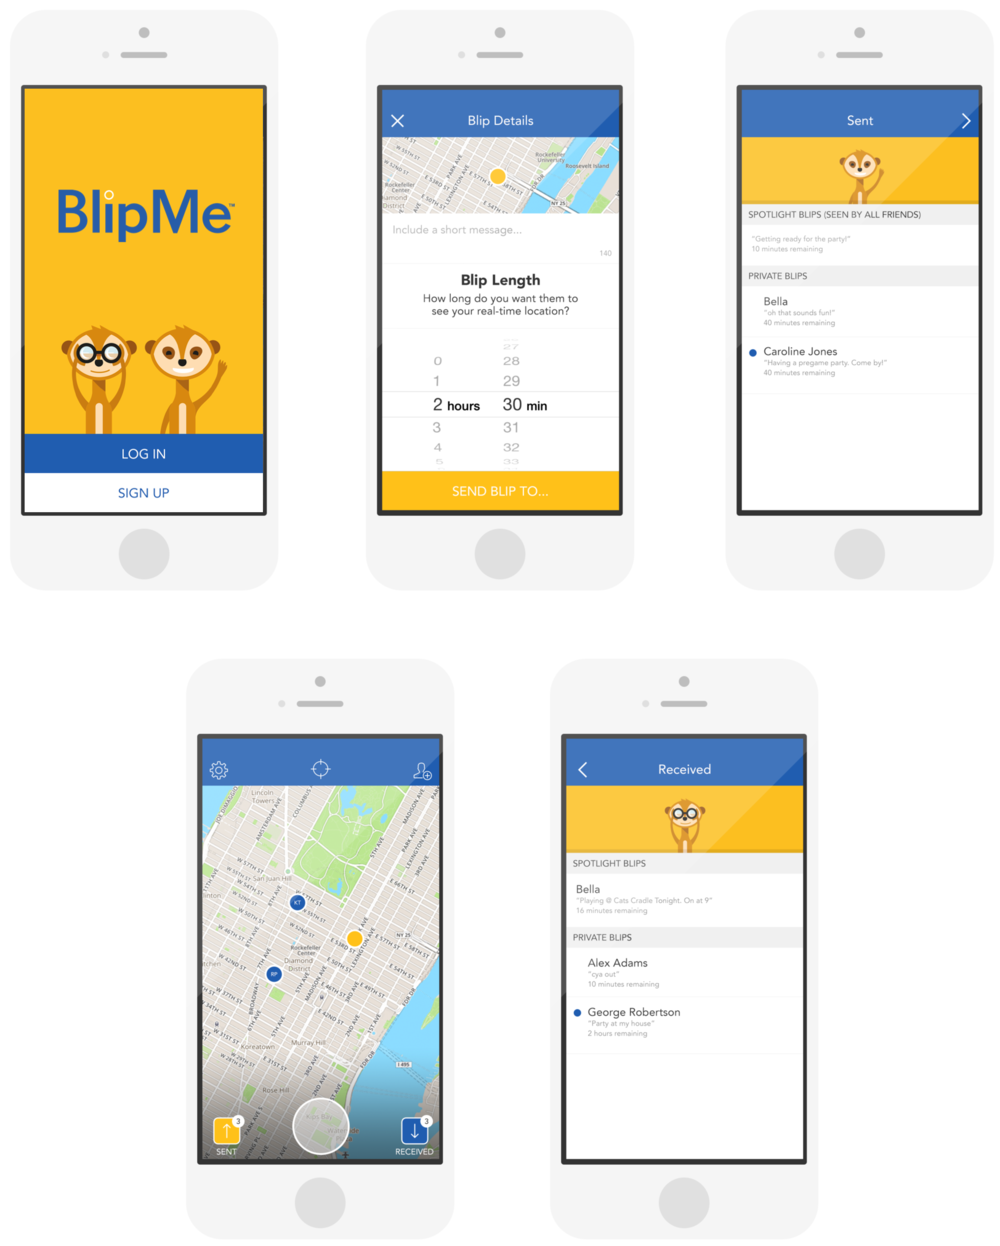 BlipMe - I did the UX and UI for BlipMe, which is an app that allows users to quickly and directly share real-time locations (or blips) with each other! Only those you selected can see your location until the blip expires or you delete it.